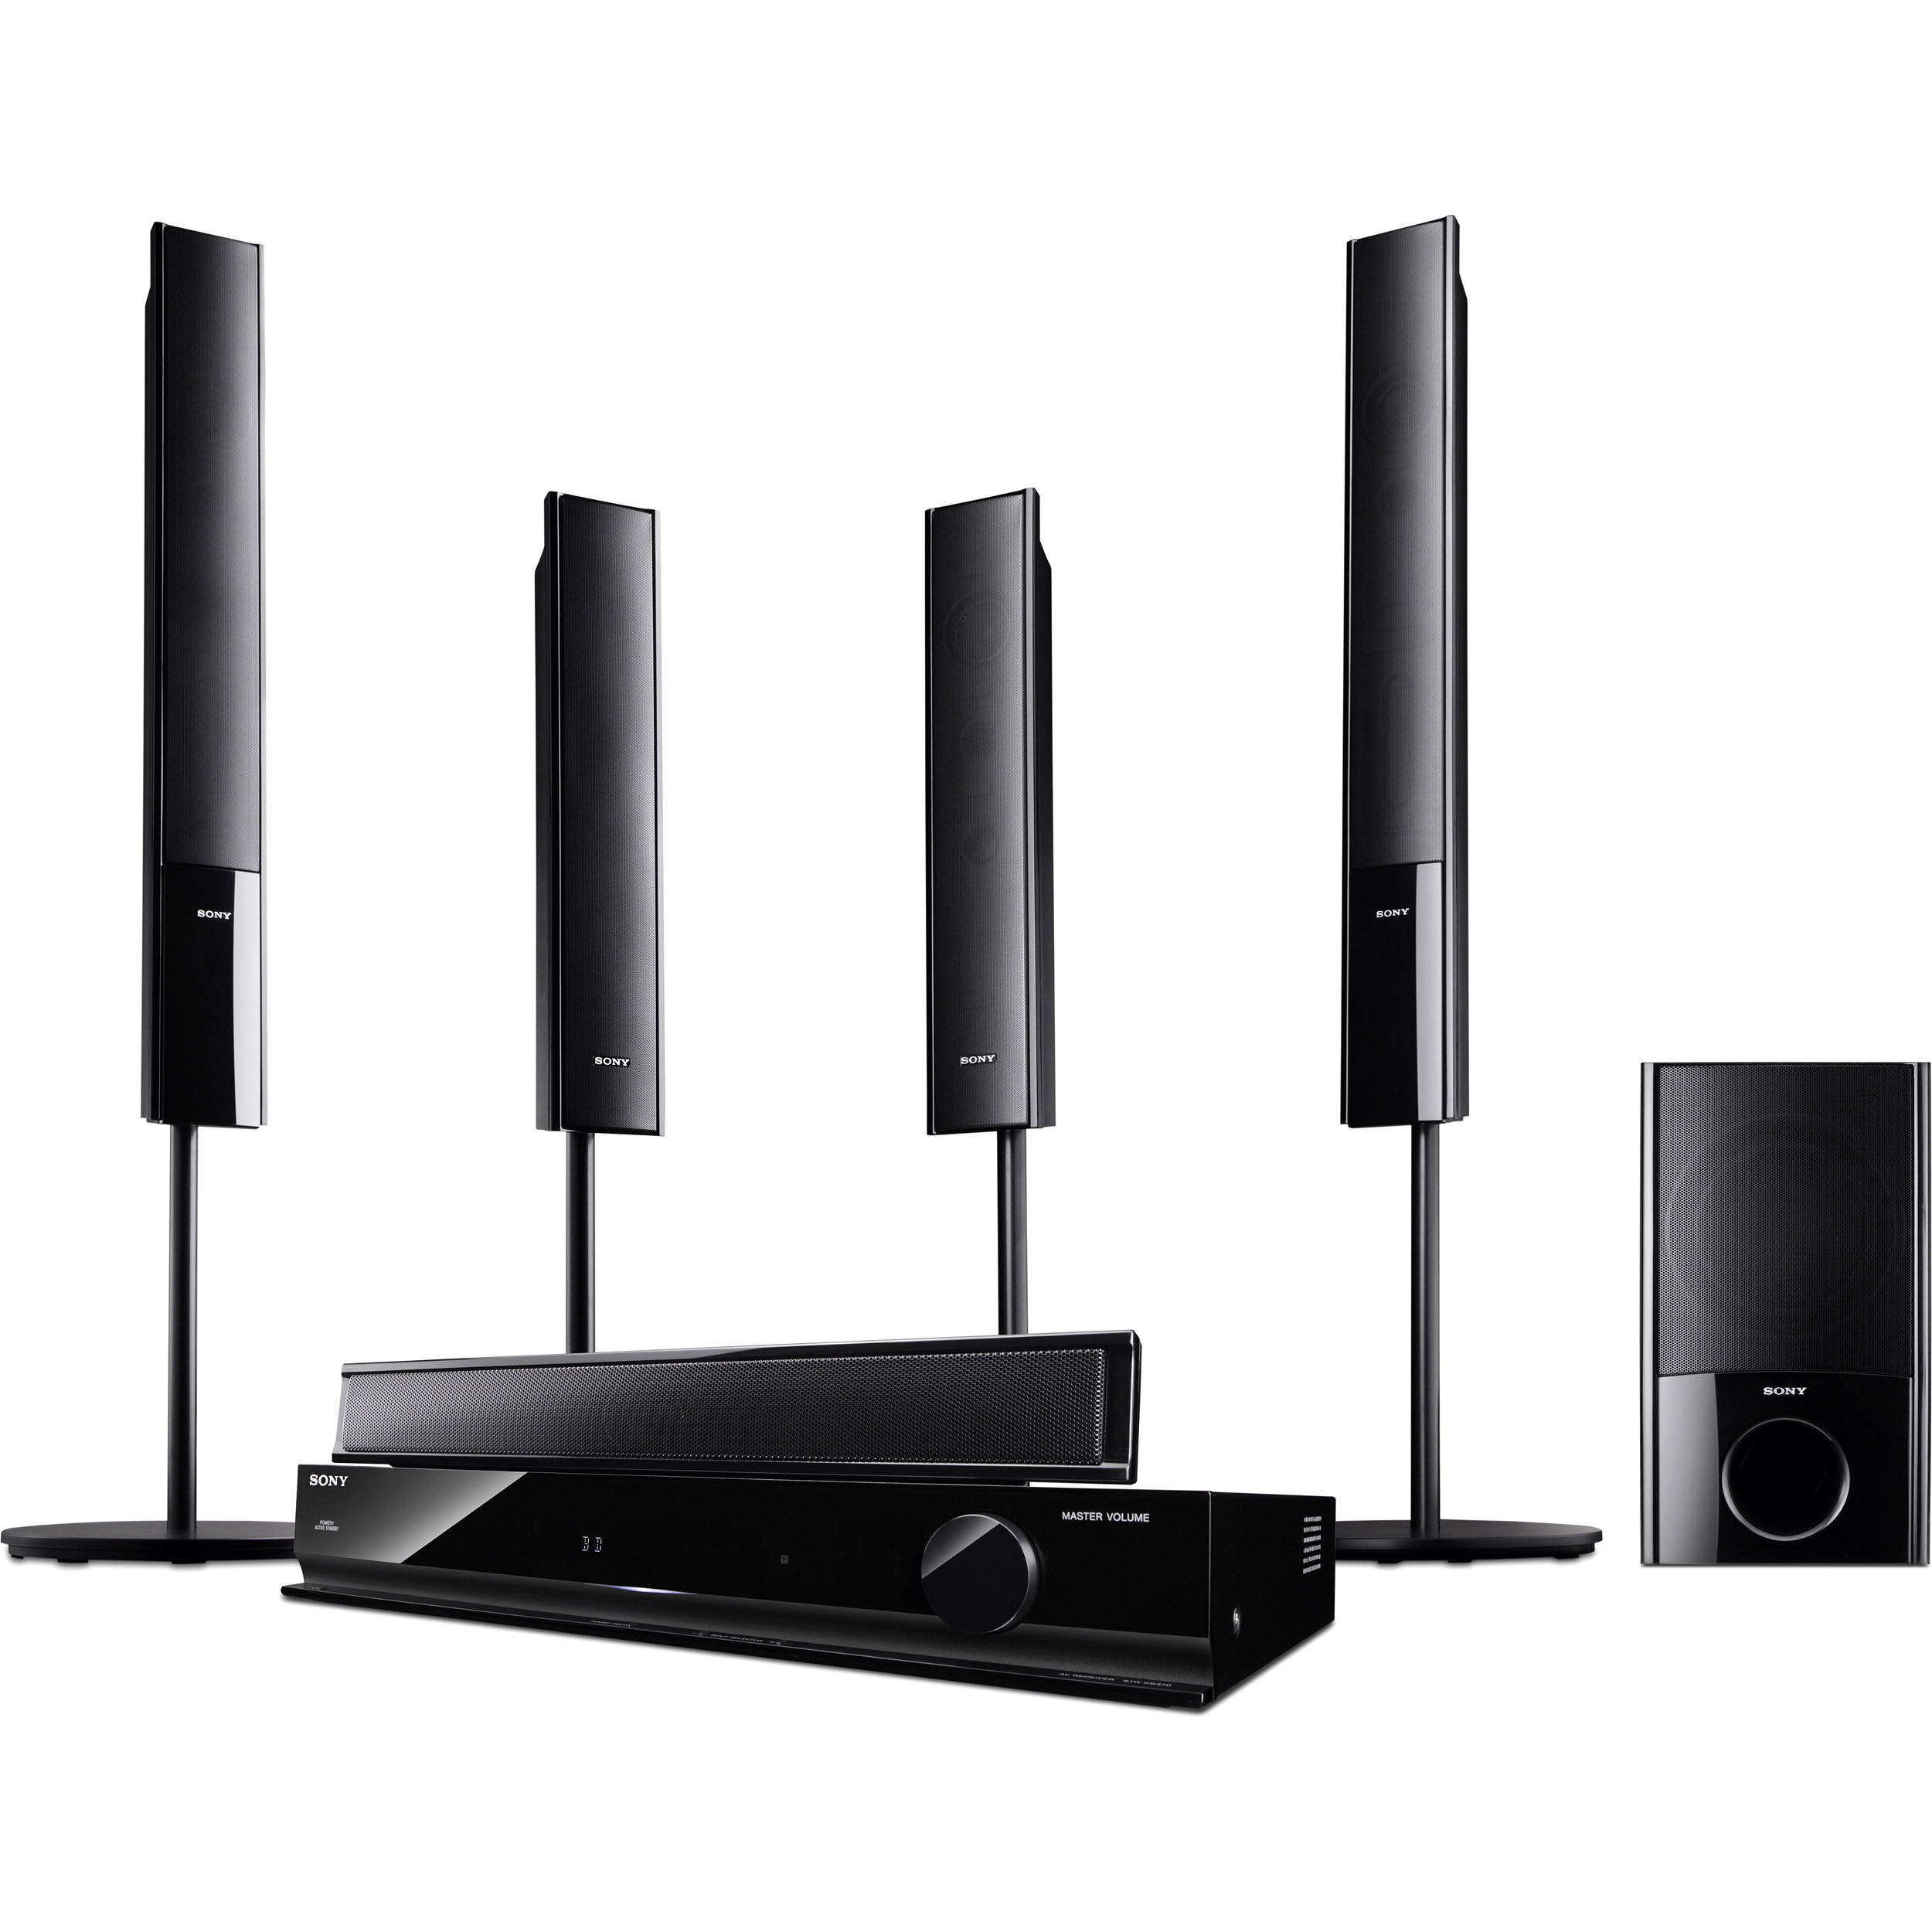 sony surround sound system. sony ht-sf470 5.1 channel surround sound system a